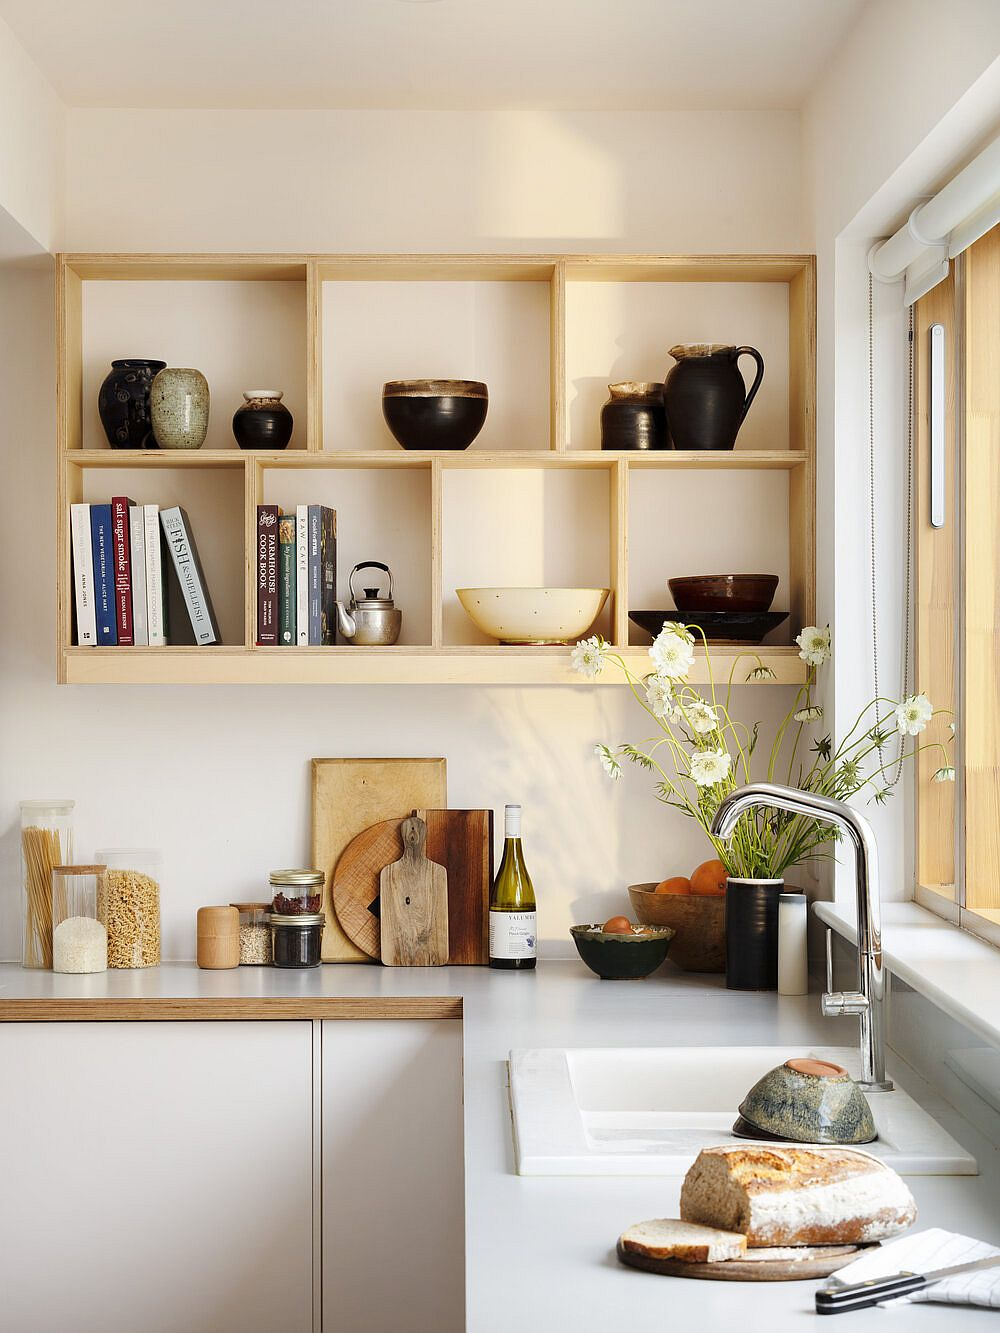 Open shelves in the corner create an eye-catching display in the modern white kitchen